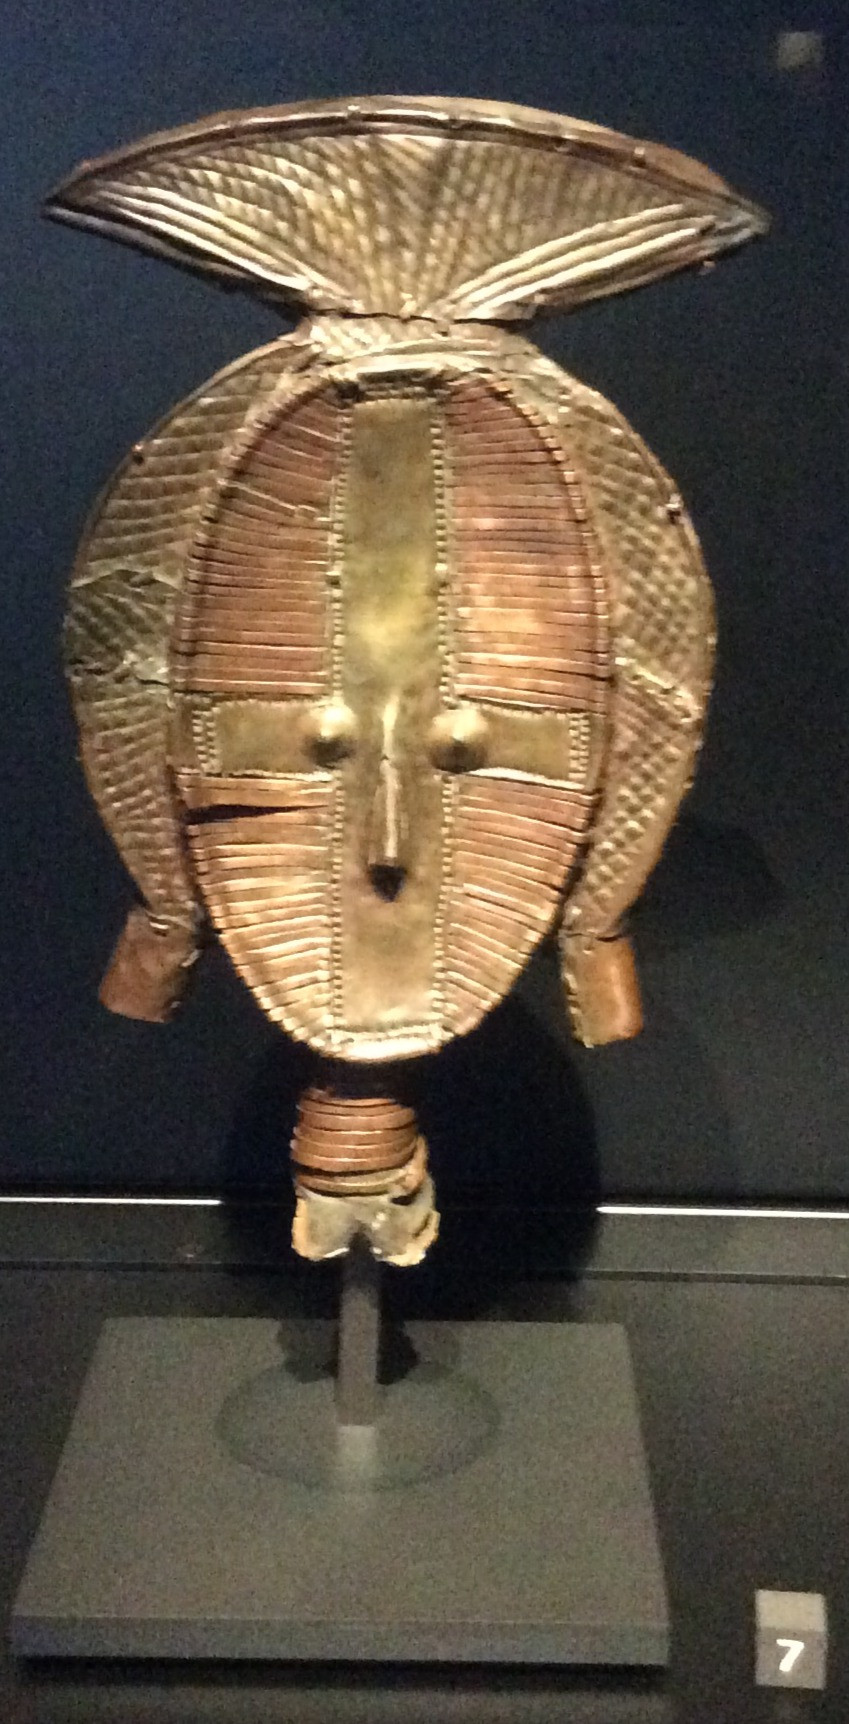 Reliquary keeper figure at the Quai Branly Museum